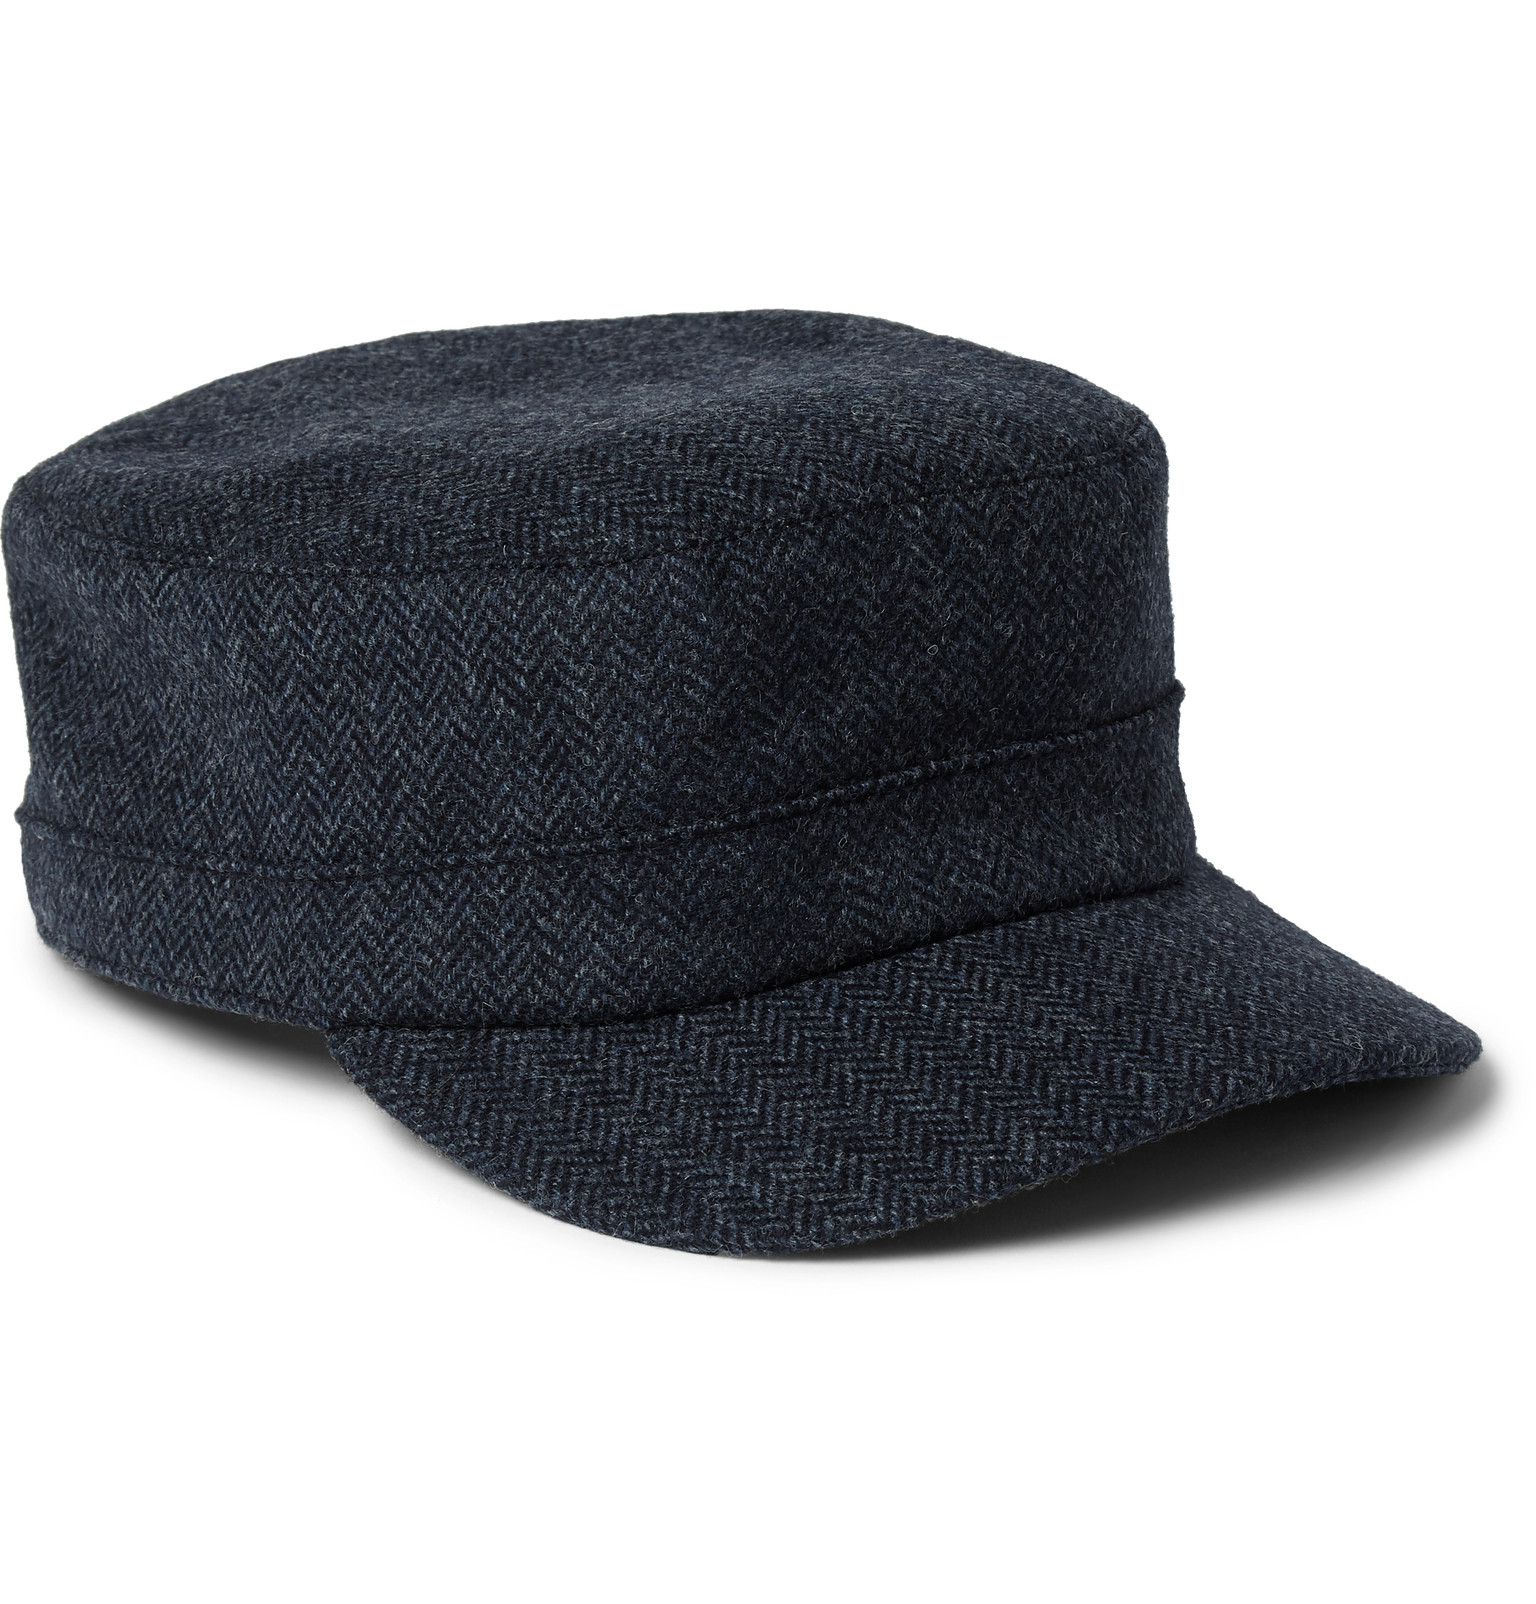 Herringbone Wool Cap Lock & Co Hatters CfPdWg